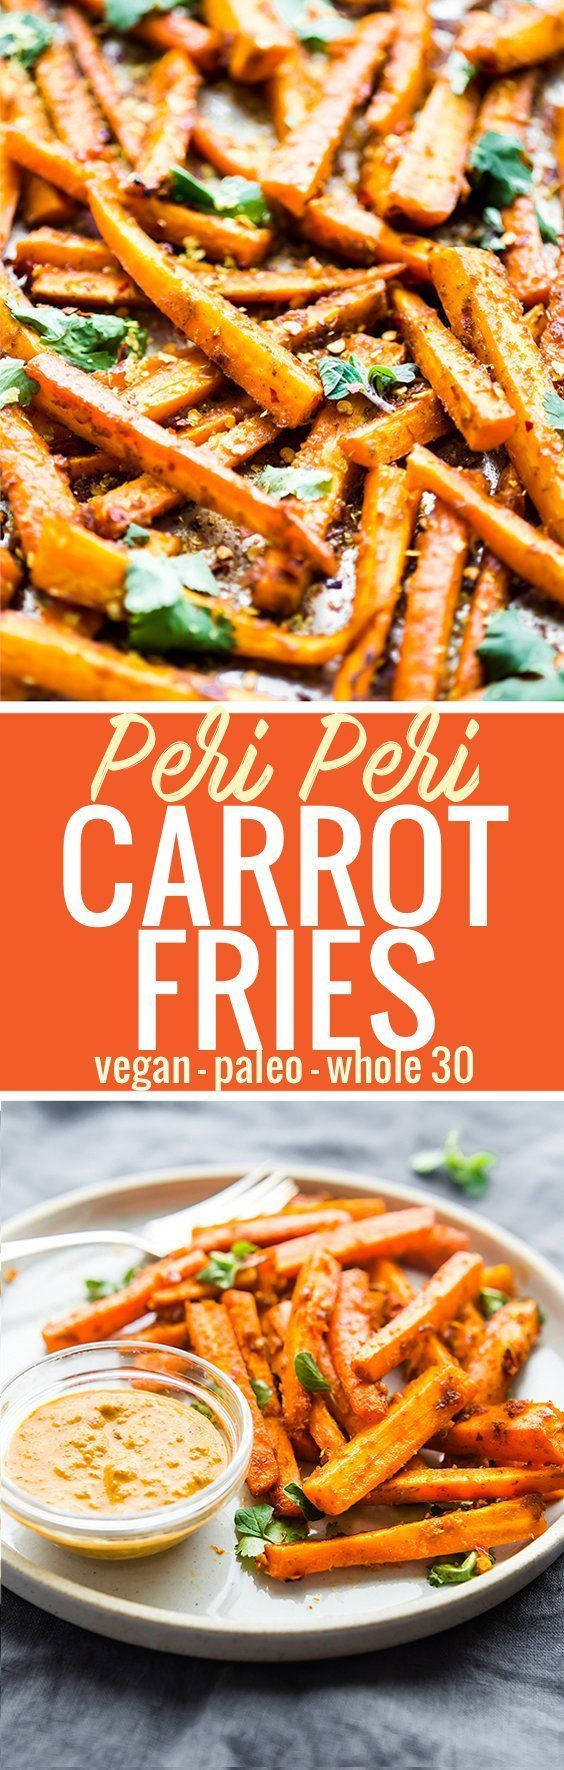 These Peri Peri oven baked carrot fries are gonna knock your socks off ya'll! The homemade Peri Peri Sauce is the key to making these carrot fries more flavorful.Just marinate slicecarrots in the sauce, bake, and enjoy! A paleo, vegan, and whole 30 frie